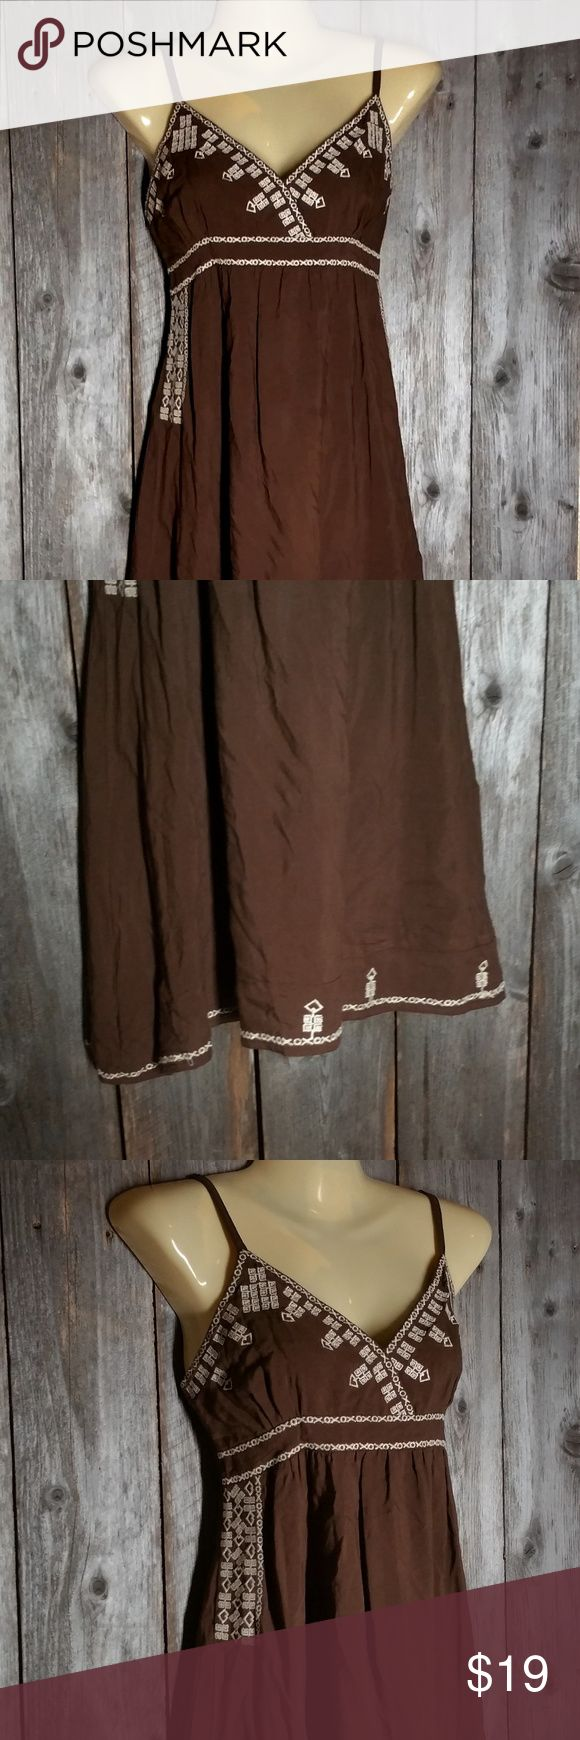 Mine Dress Top Brown Embroidered Boho Sundress Mine Women's Dress Top Size M Brown Embroidered Boho Peasant Sundress Mini Gently used Cotton & rayon Adjustable straps Unlined Smocked back Approx bust 34 - 38 and length from top of shoulder to hem 34 mine Dresses Mini